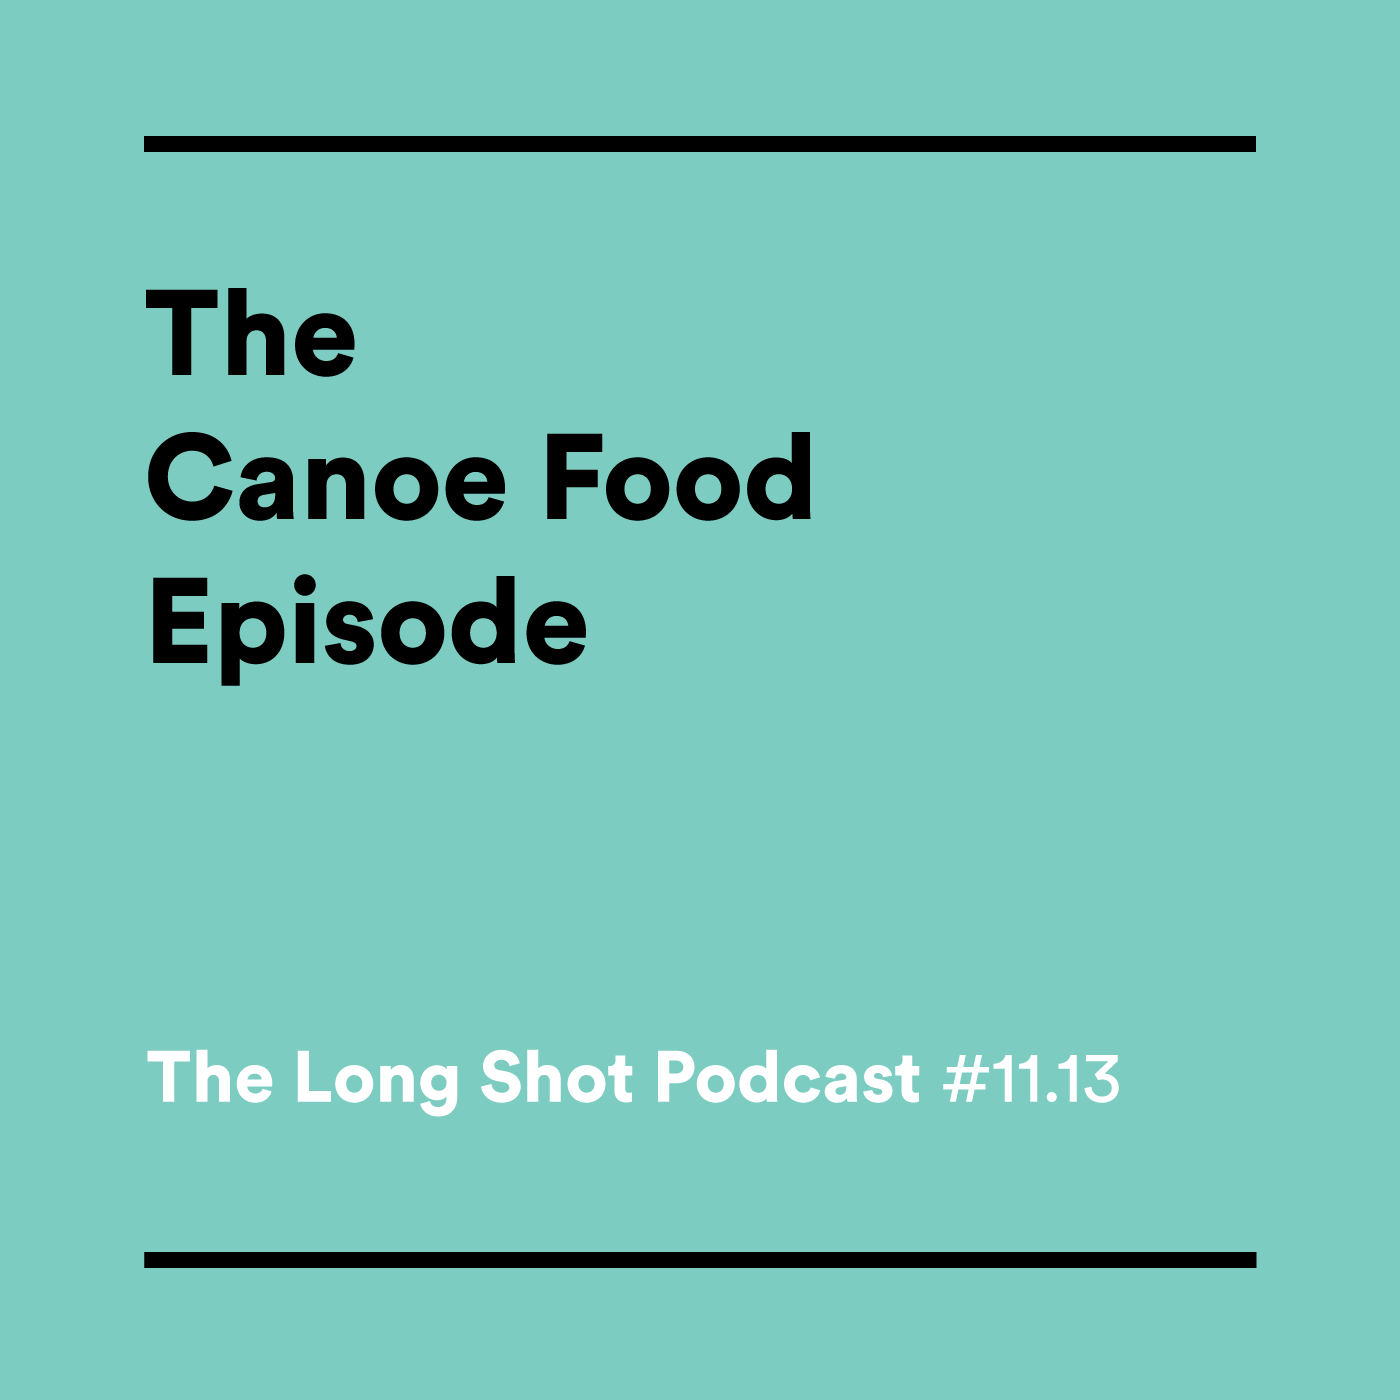 #11.13 The Canoe Food Episode